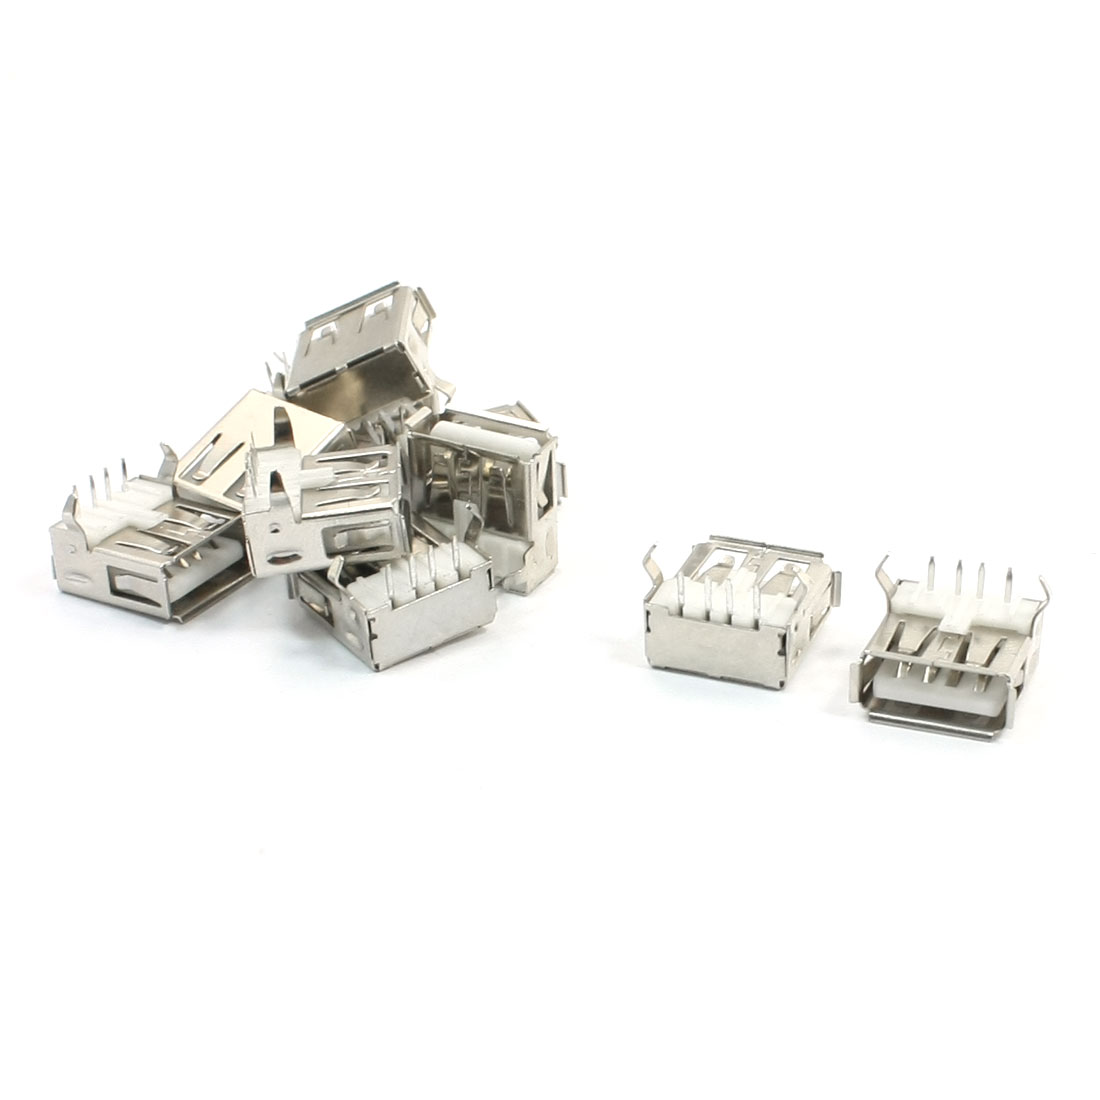 10pcs Shielded Right Angle 4-Pin DIP Female USB 2.0 A Jack Socket Port